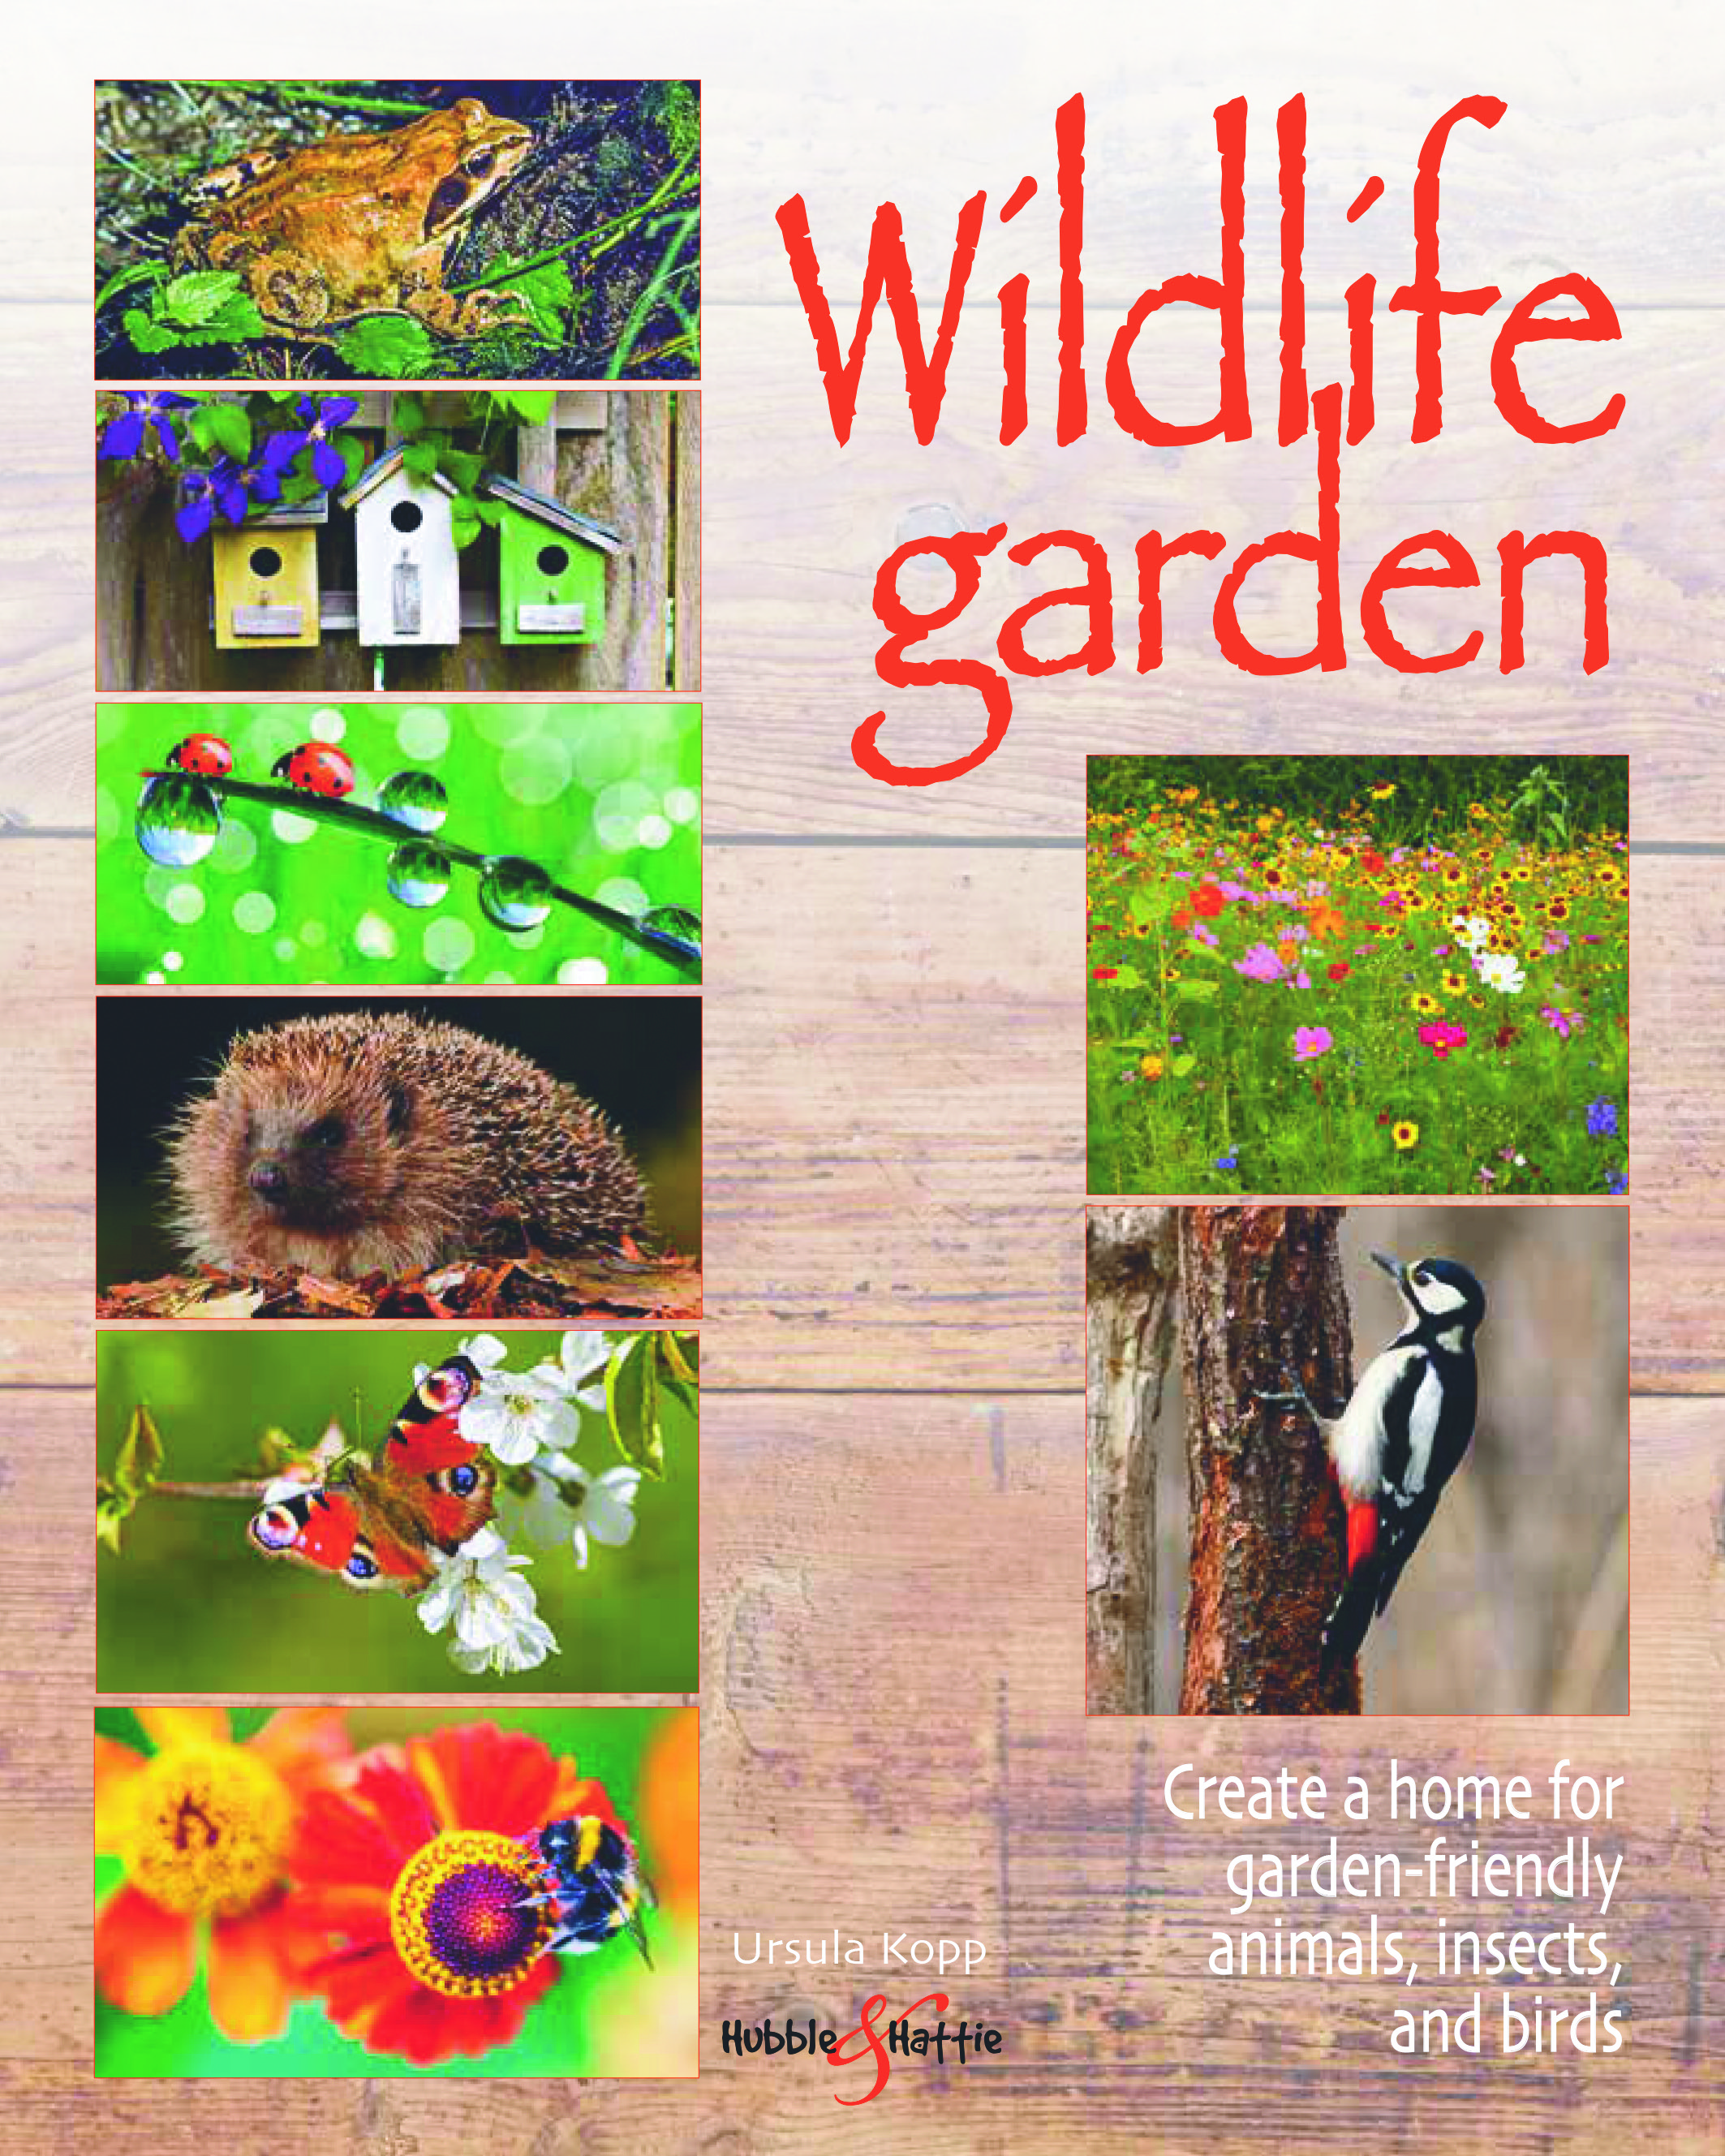 Wildlife garden - Create a home for garden-friendly animals, insects and birds